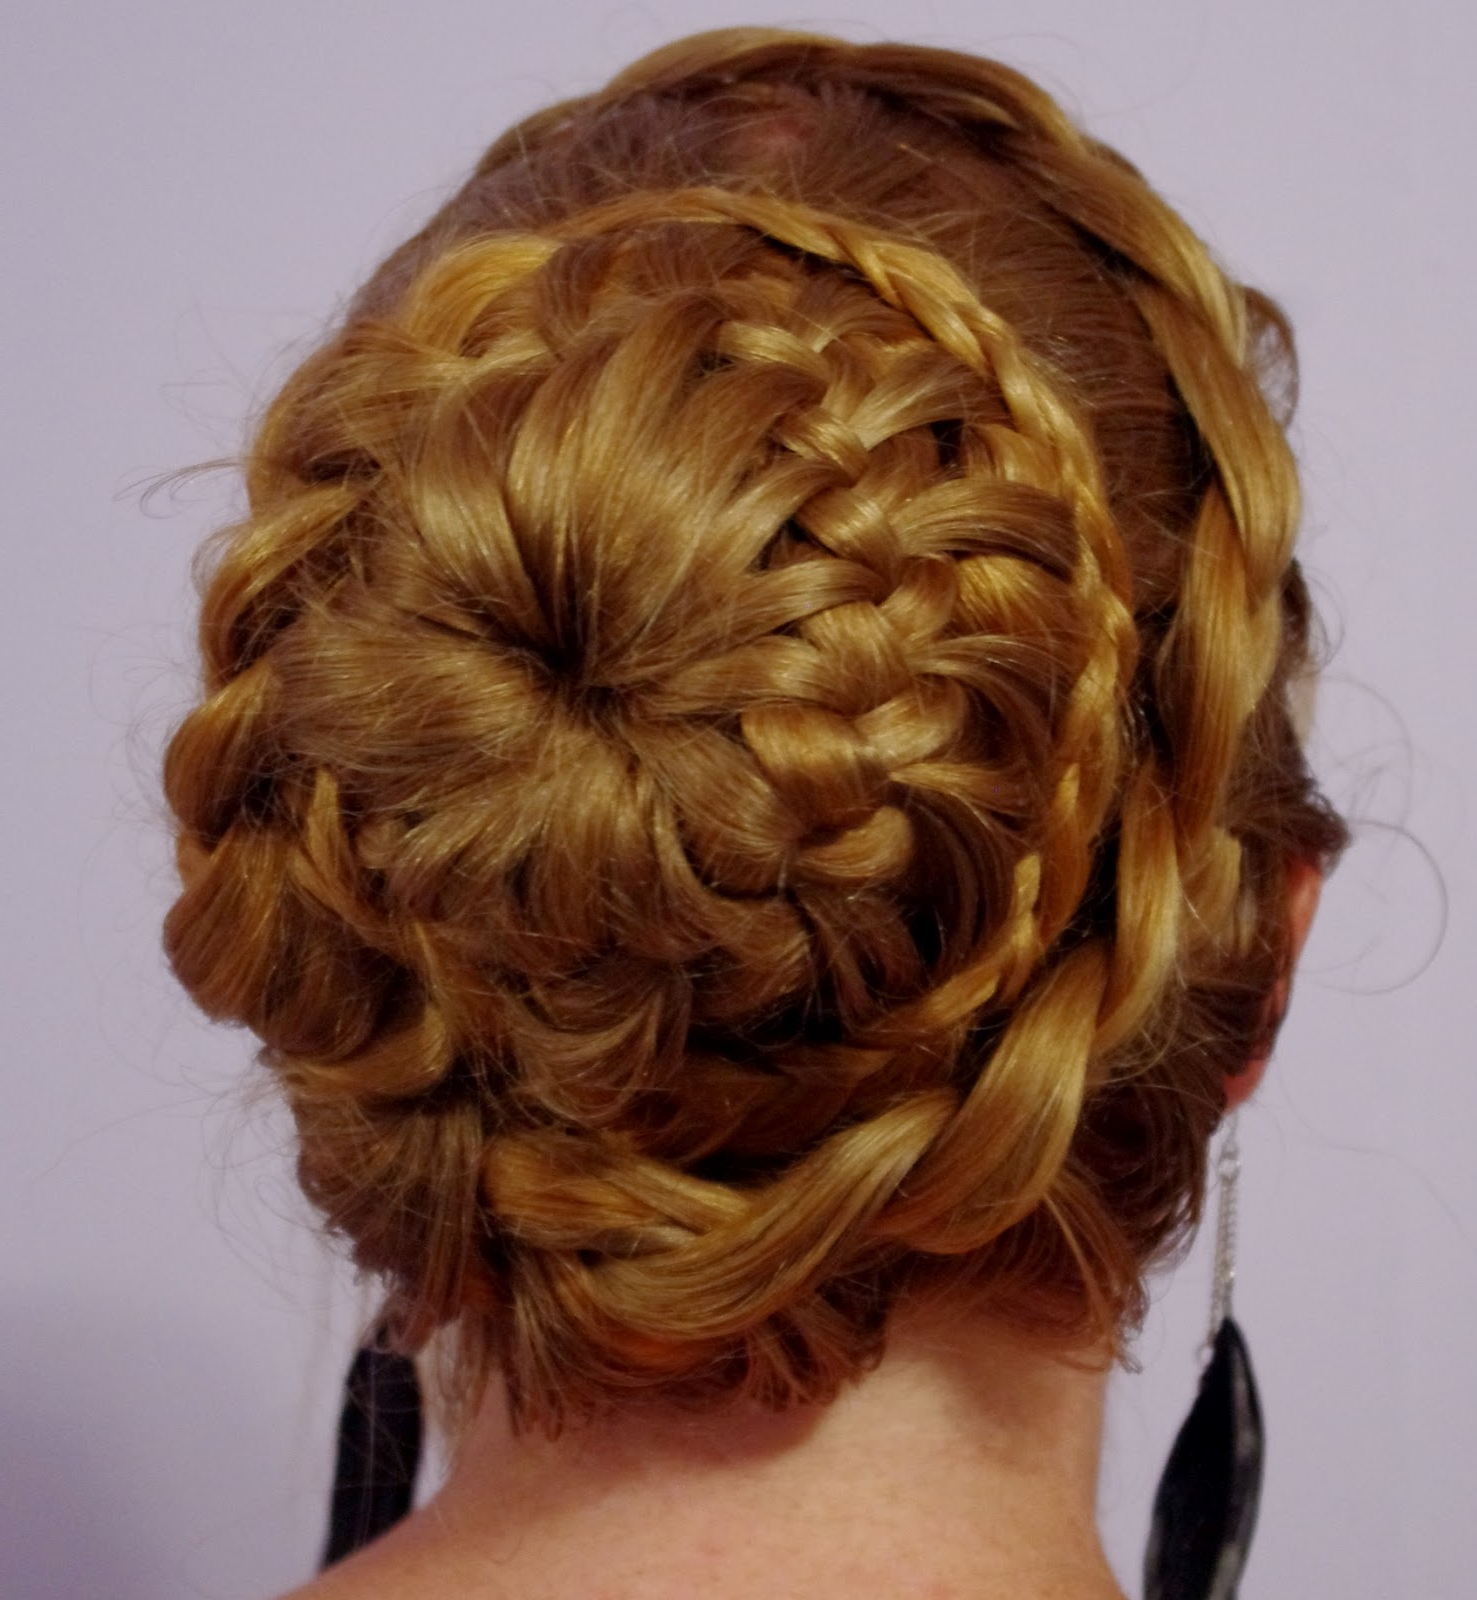 2019 Fancy Braided Hairstyles Intended For Braids & Hairstyles For Super Long Hair: Fancy Braided Bun (View 9 of 20)